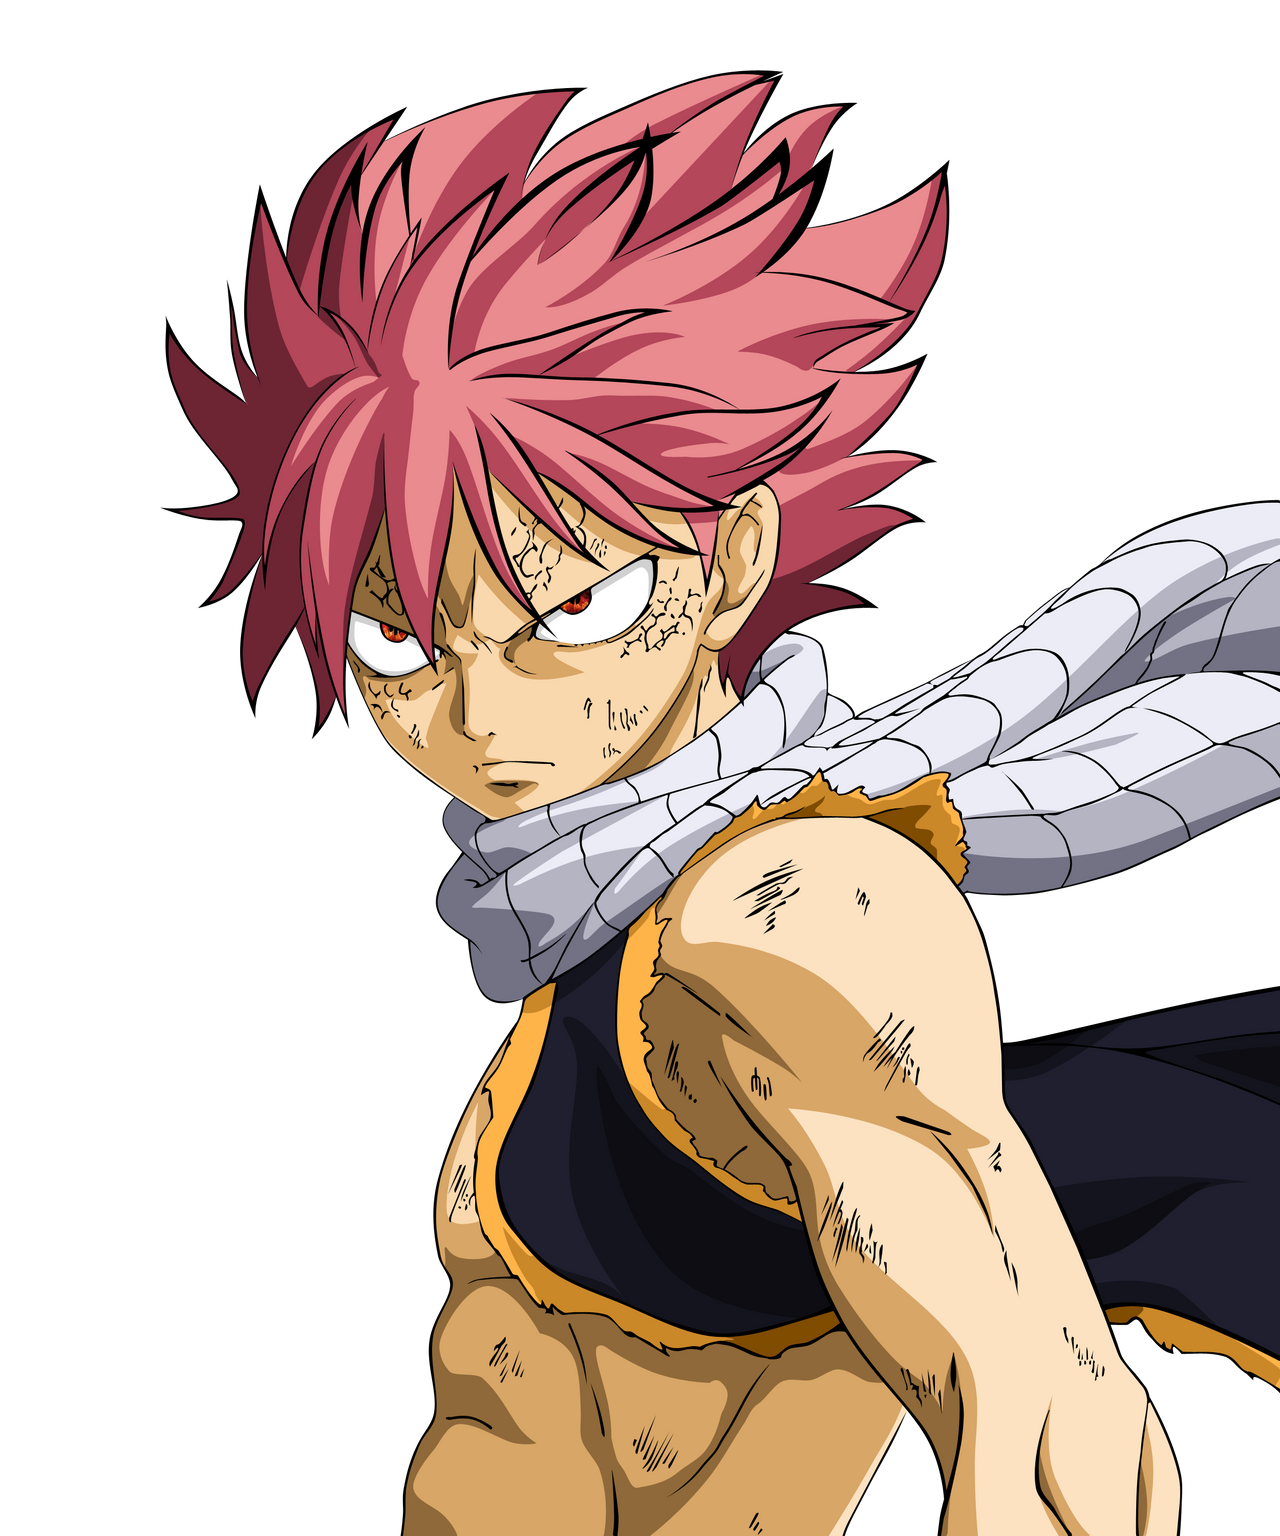 natsu dragneel: fairy tail by ice-do on DeviantArt